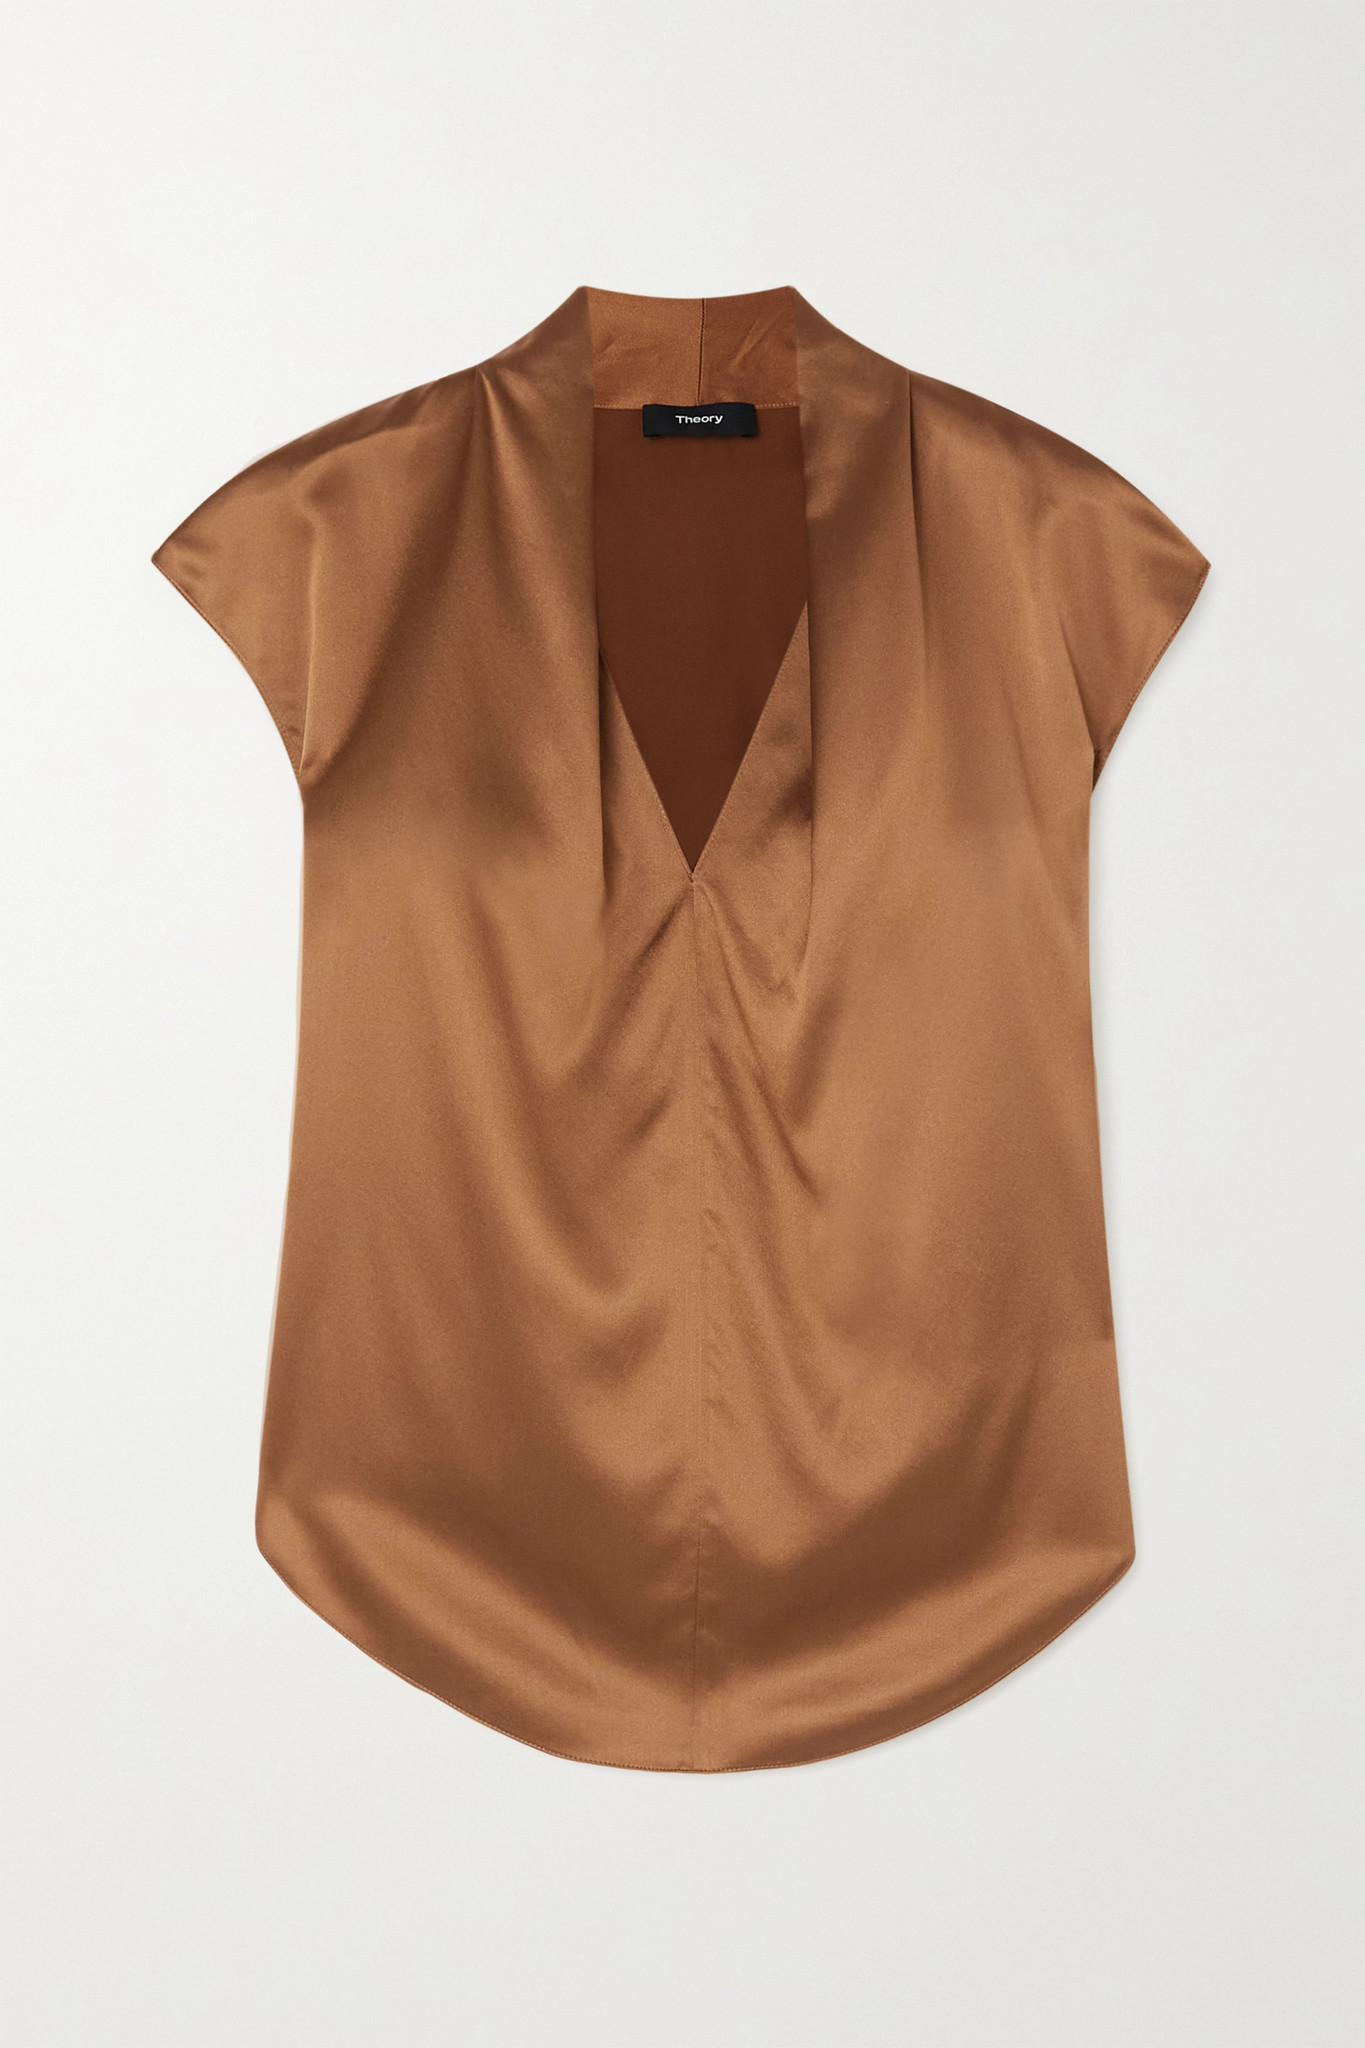 THEORY - Silk-blend Satin Top - Brown - small